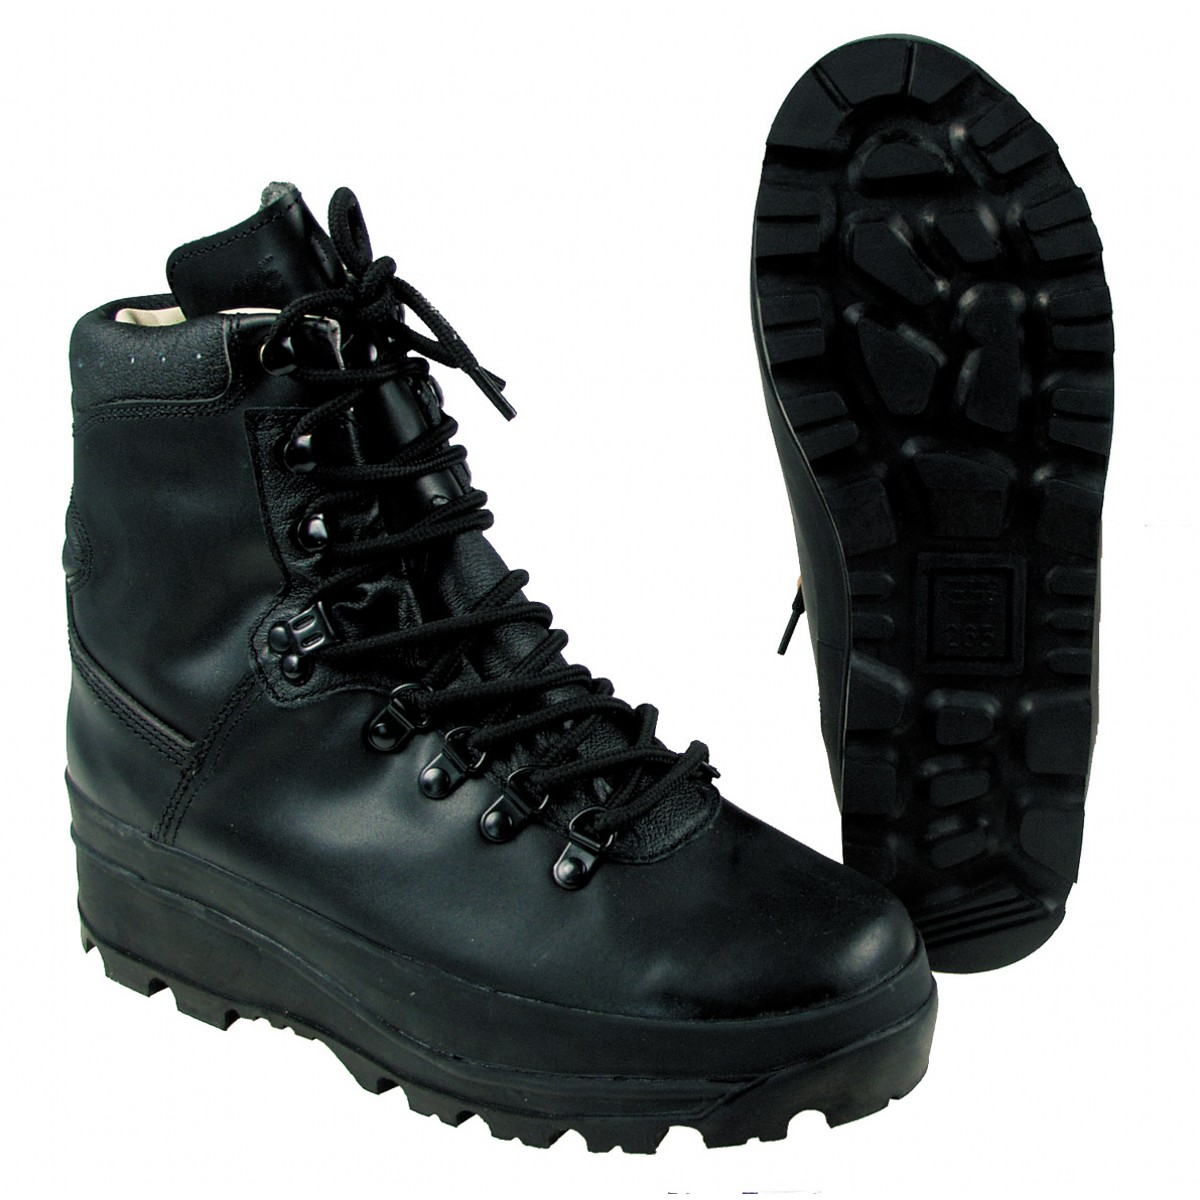 BW German Army Mountain Durable Waterproof Boots Breathtex Lining - Black